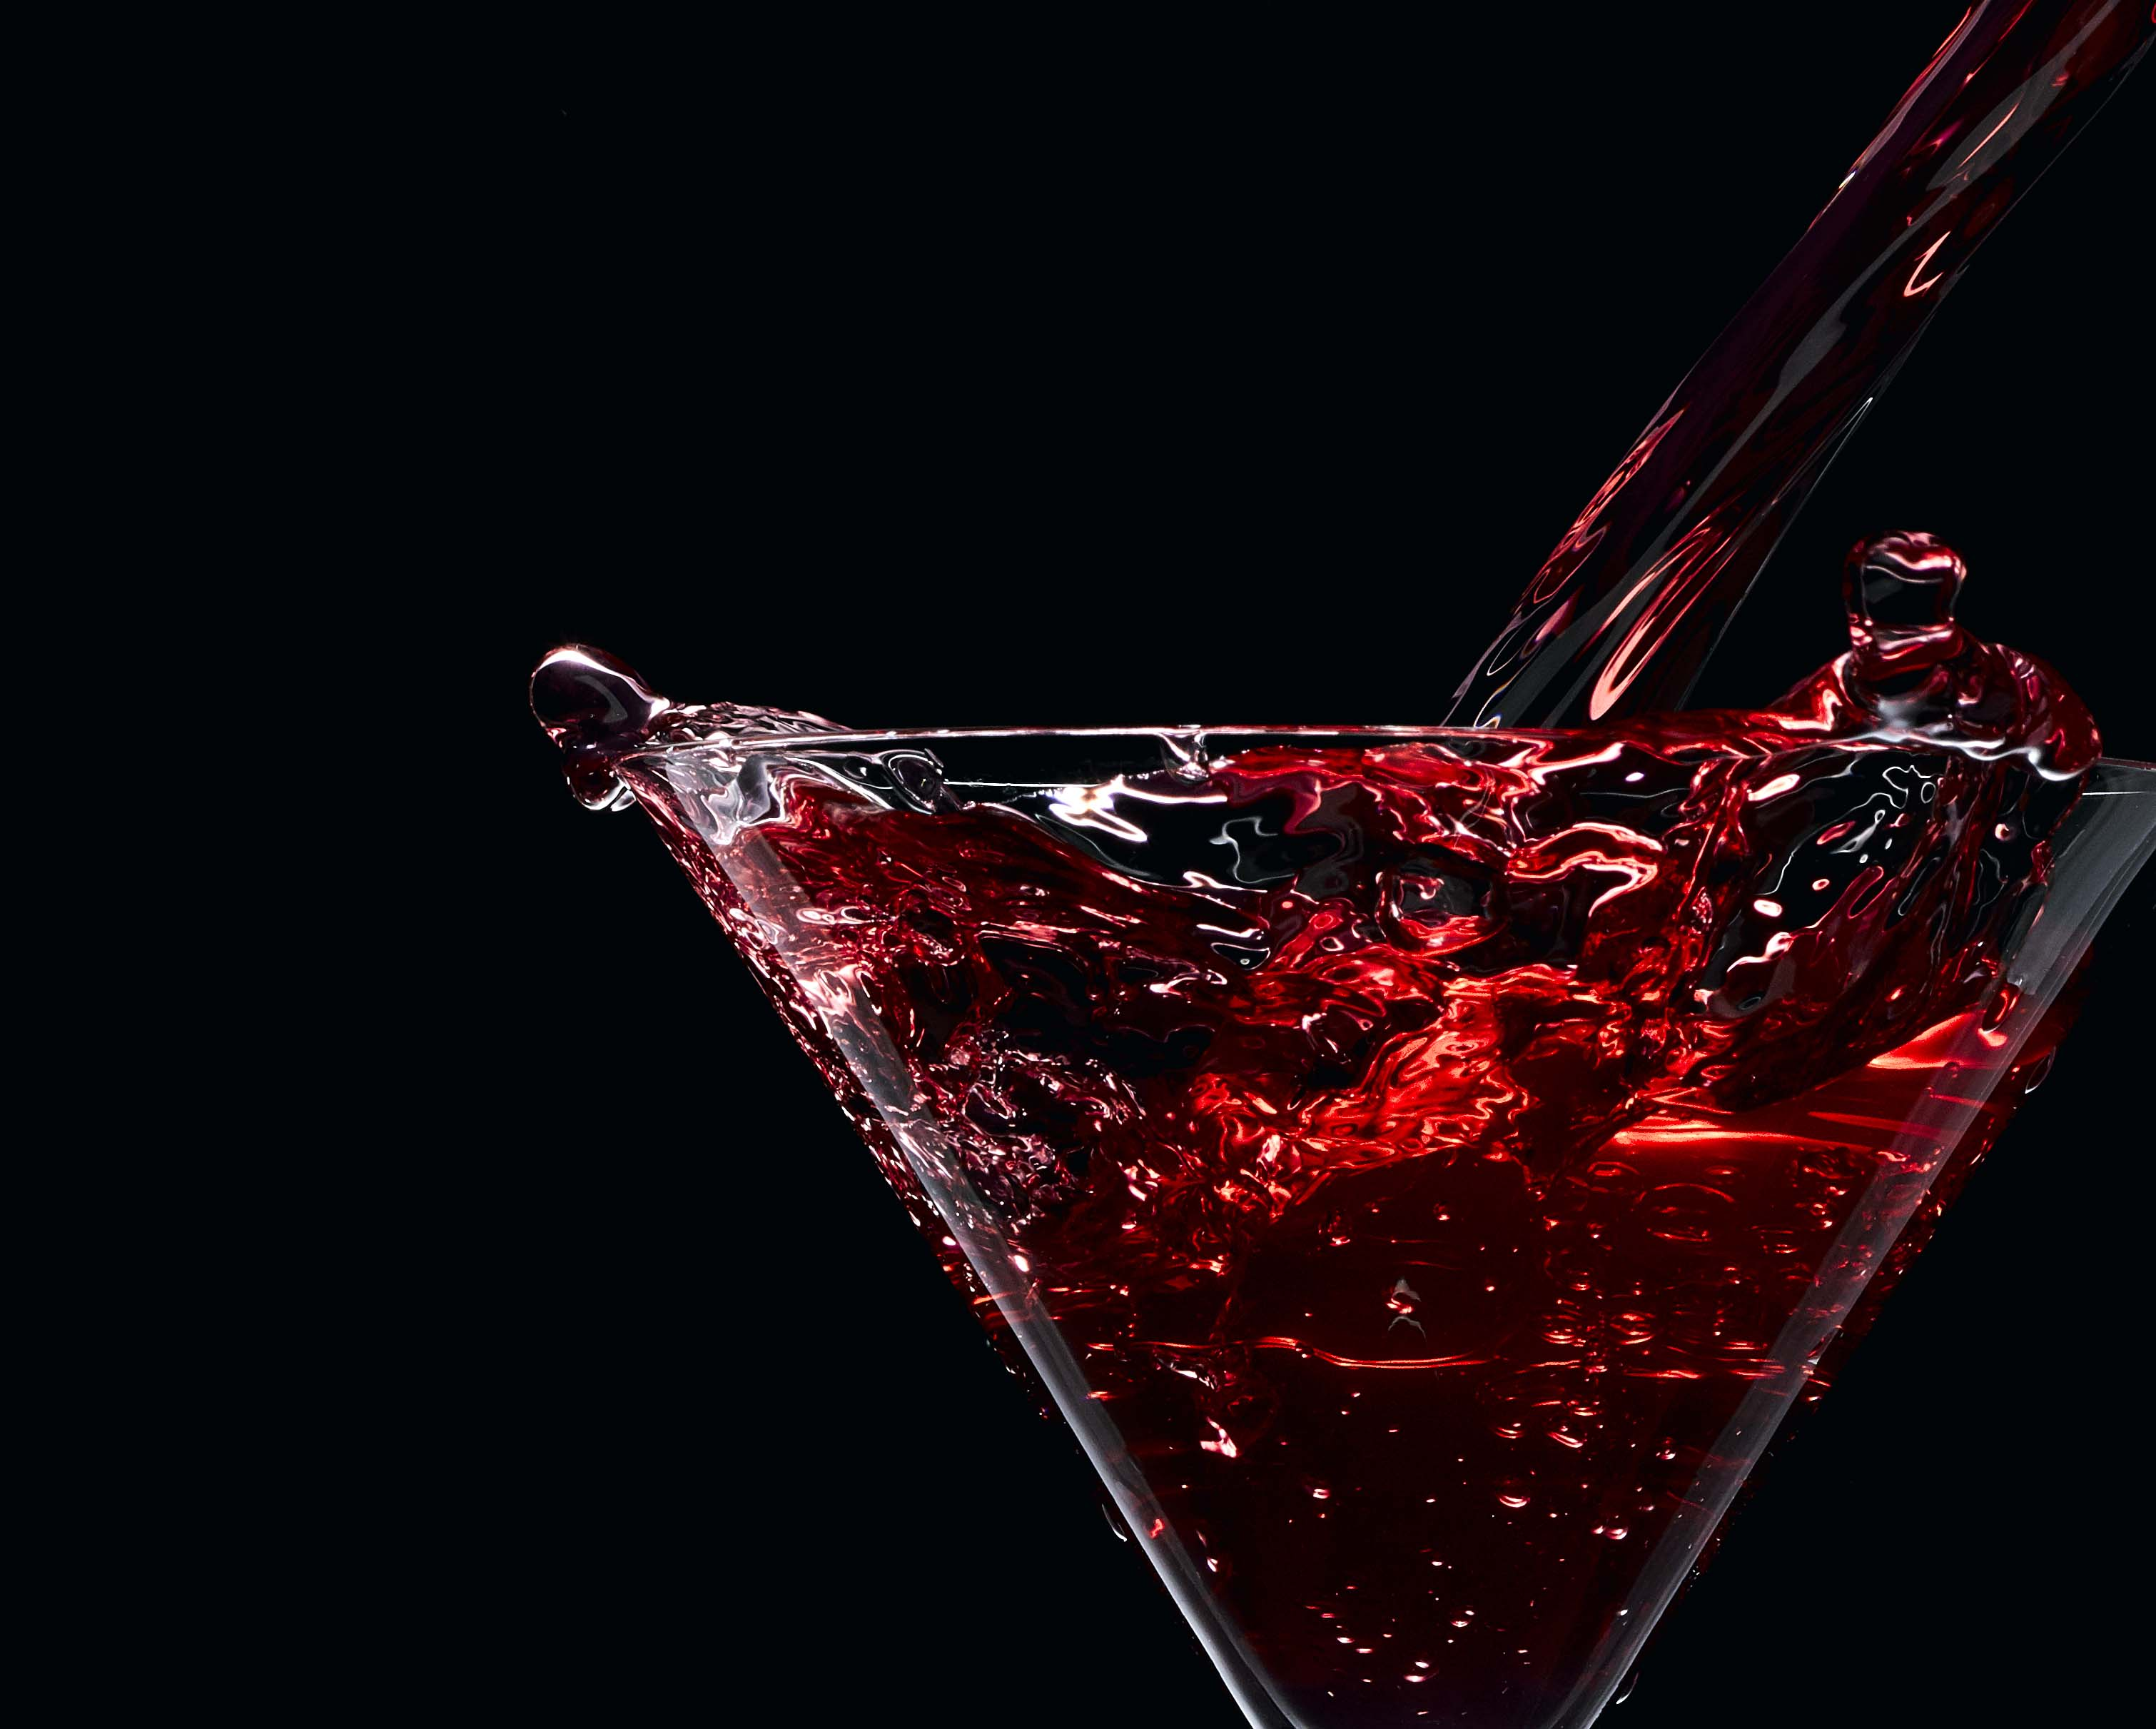 Mix red alcohol drink pouring into glass with a splash and black background